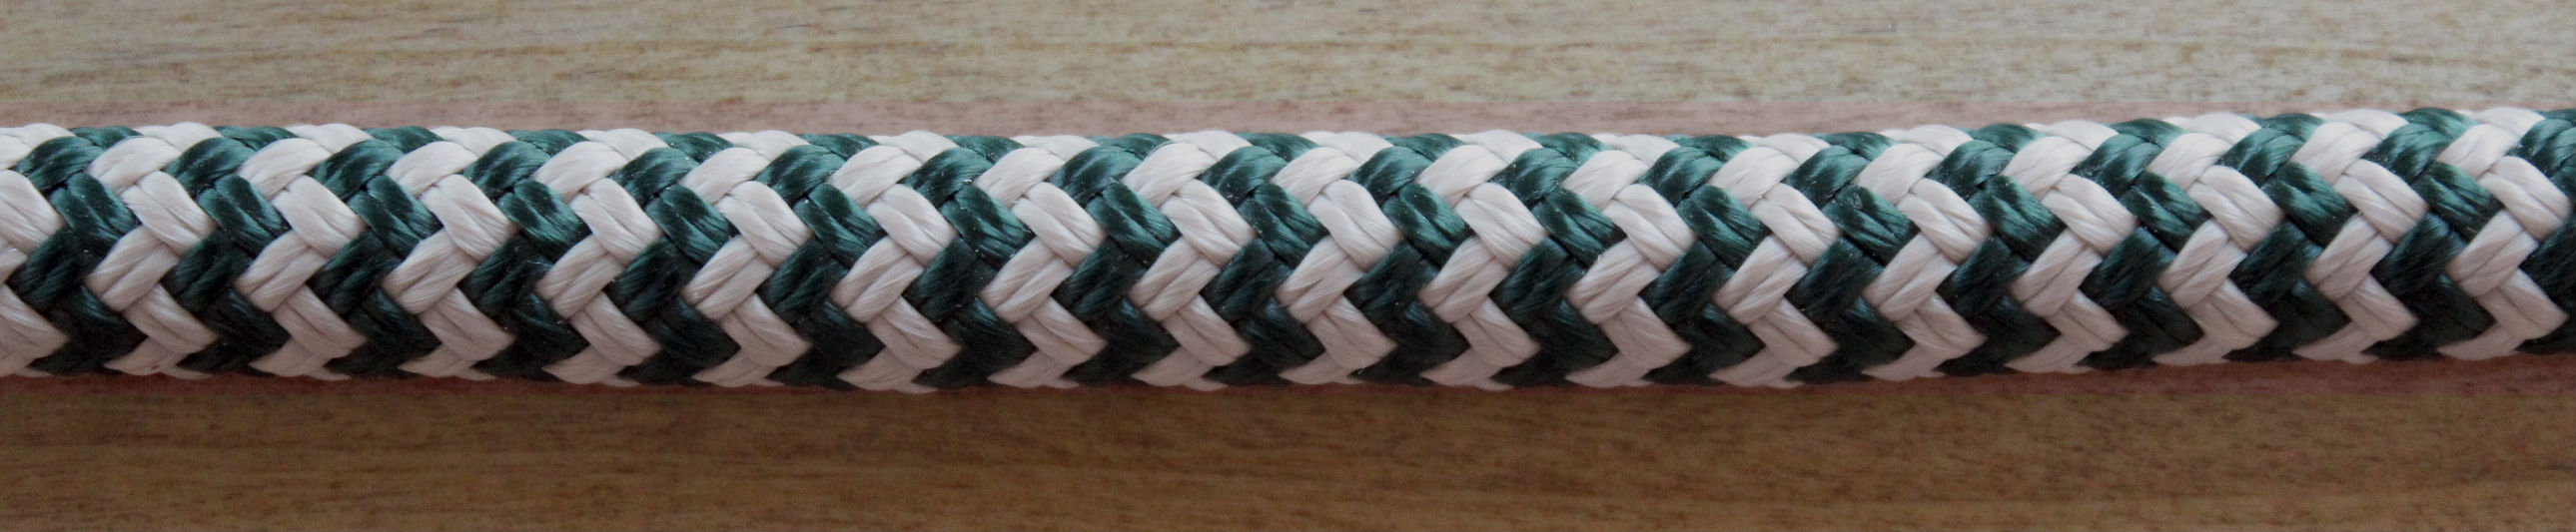 hunter-green-rope